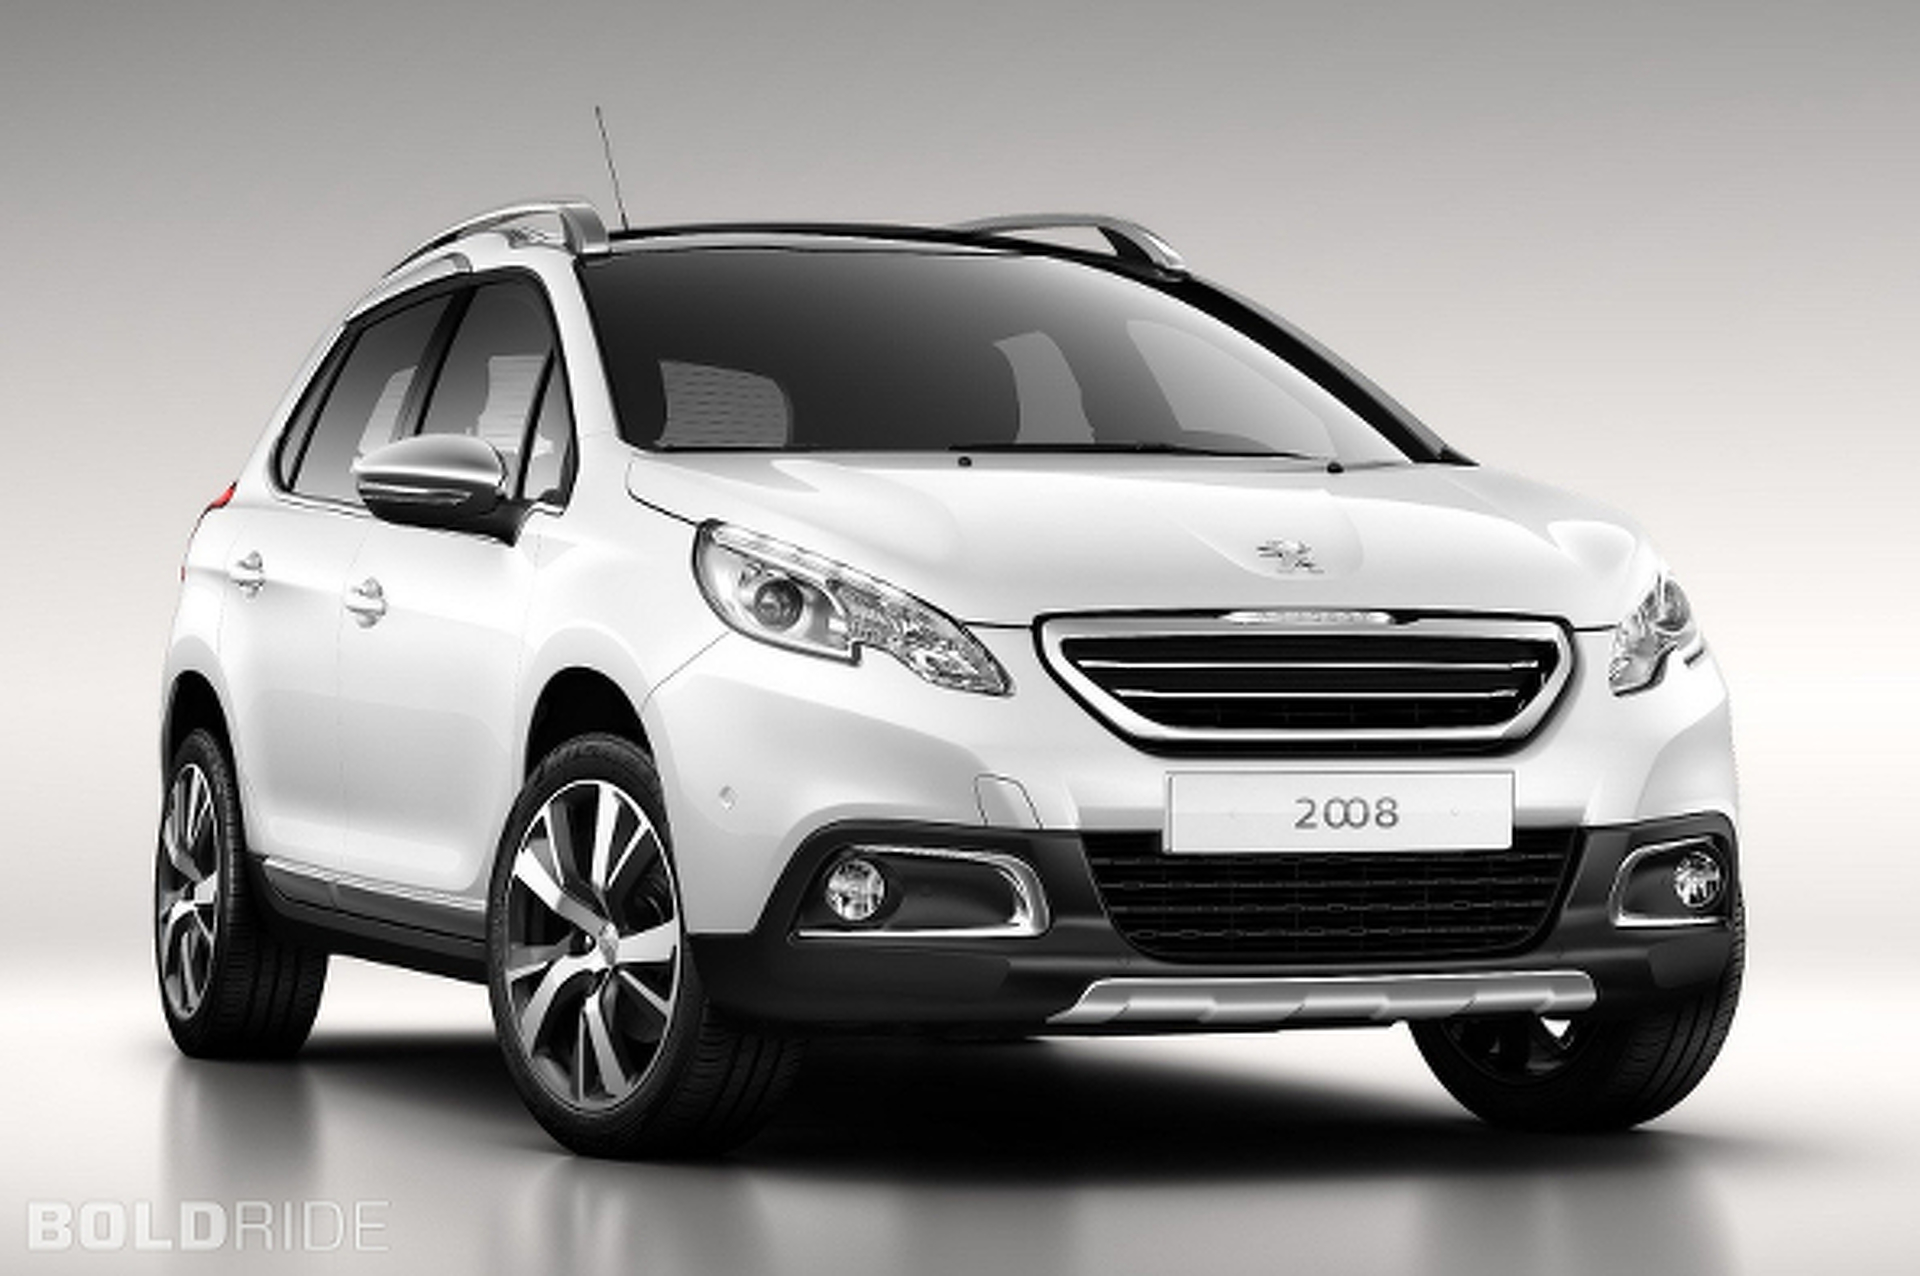 French Carmaker Peugeot Debuts New Air-Hybrid Powertrain